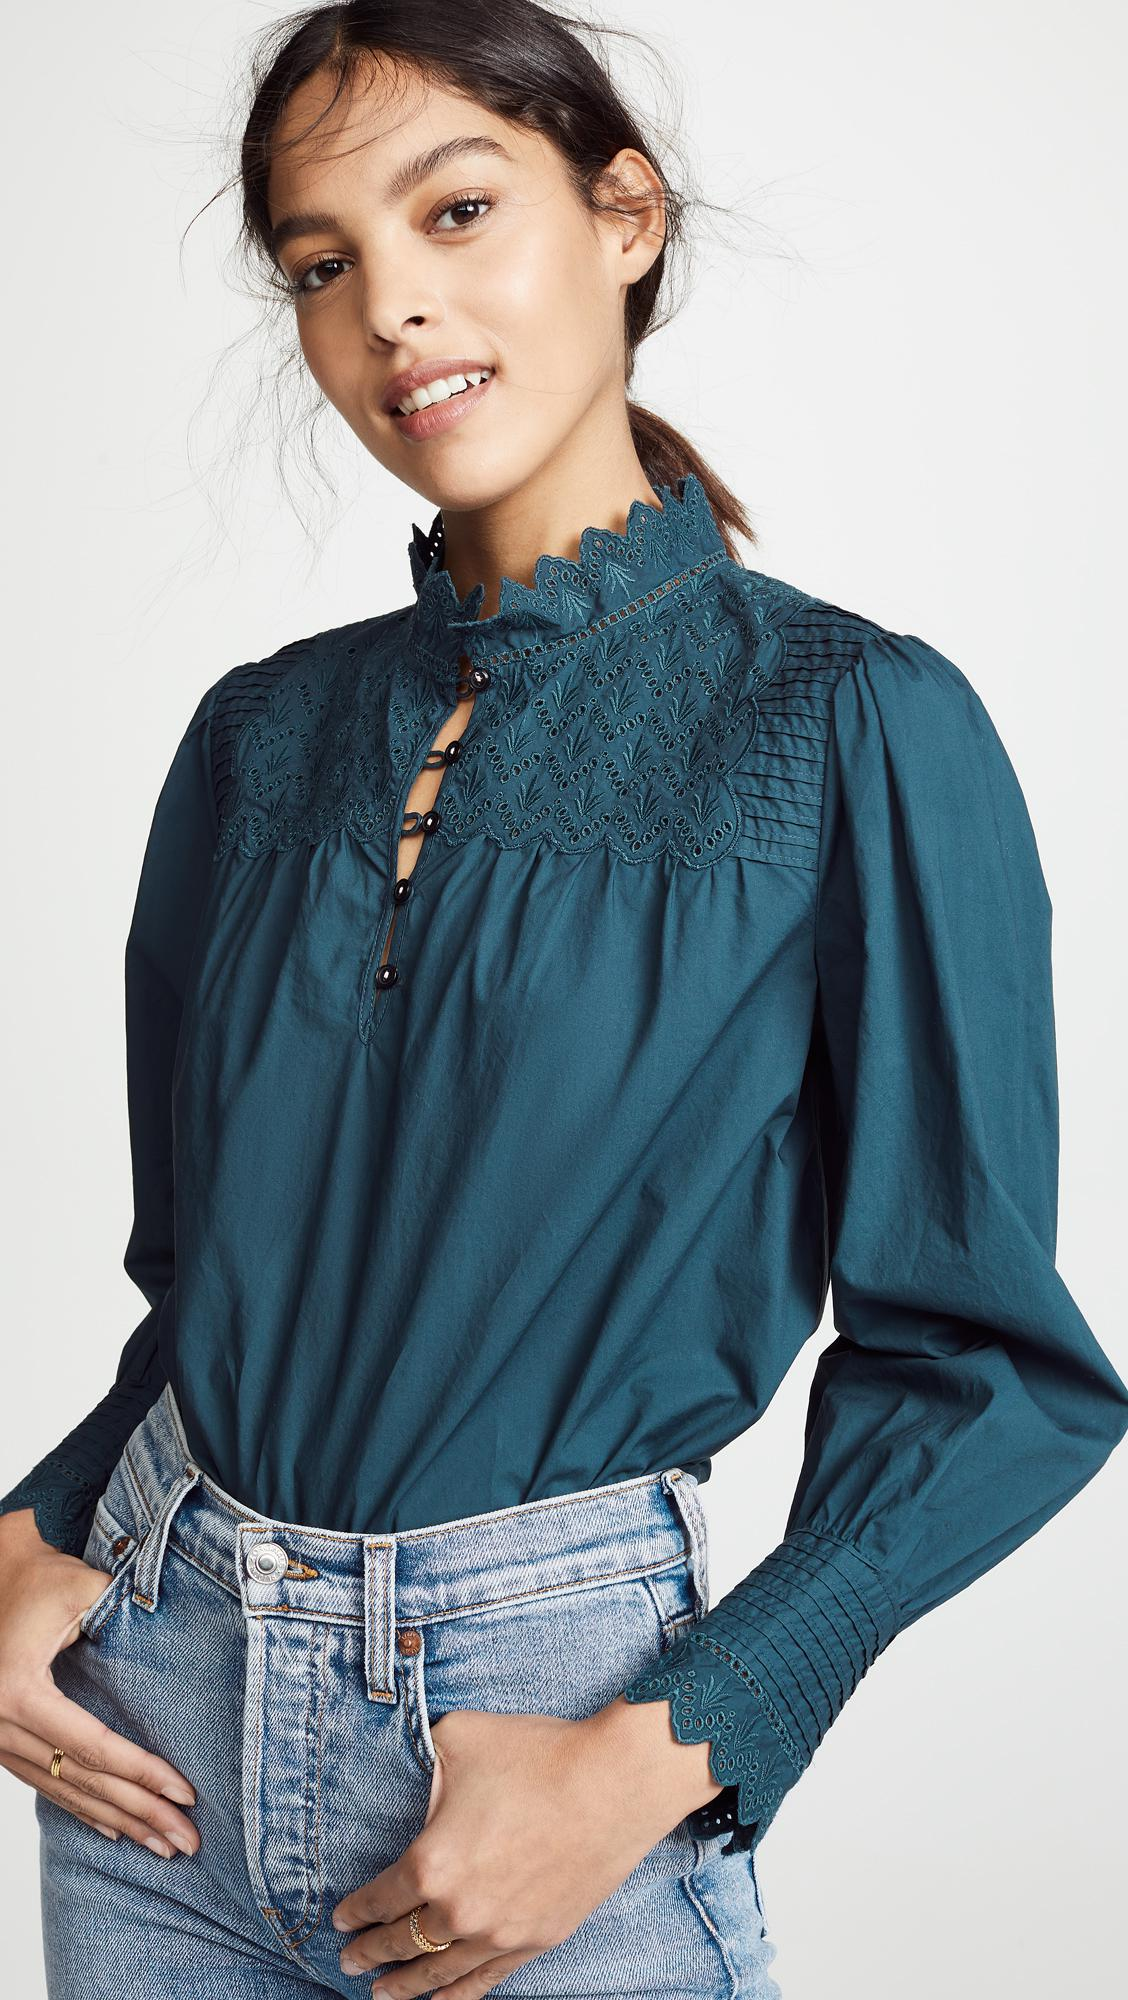 ac894a5a9d5e0 Lyst - La Vie Rebecca Taylor Long Sleeve Embroidered Poplin Top in Blue